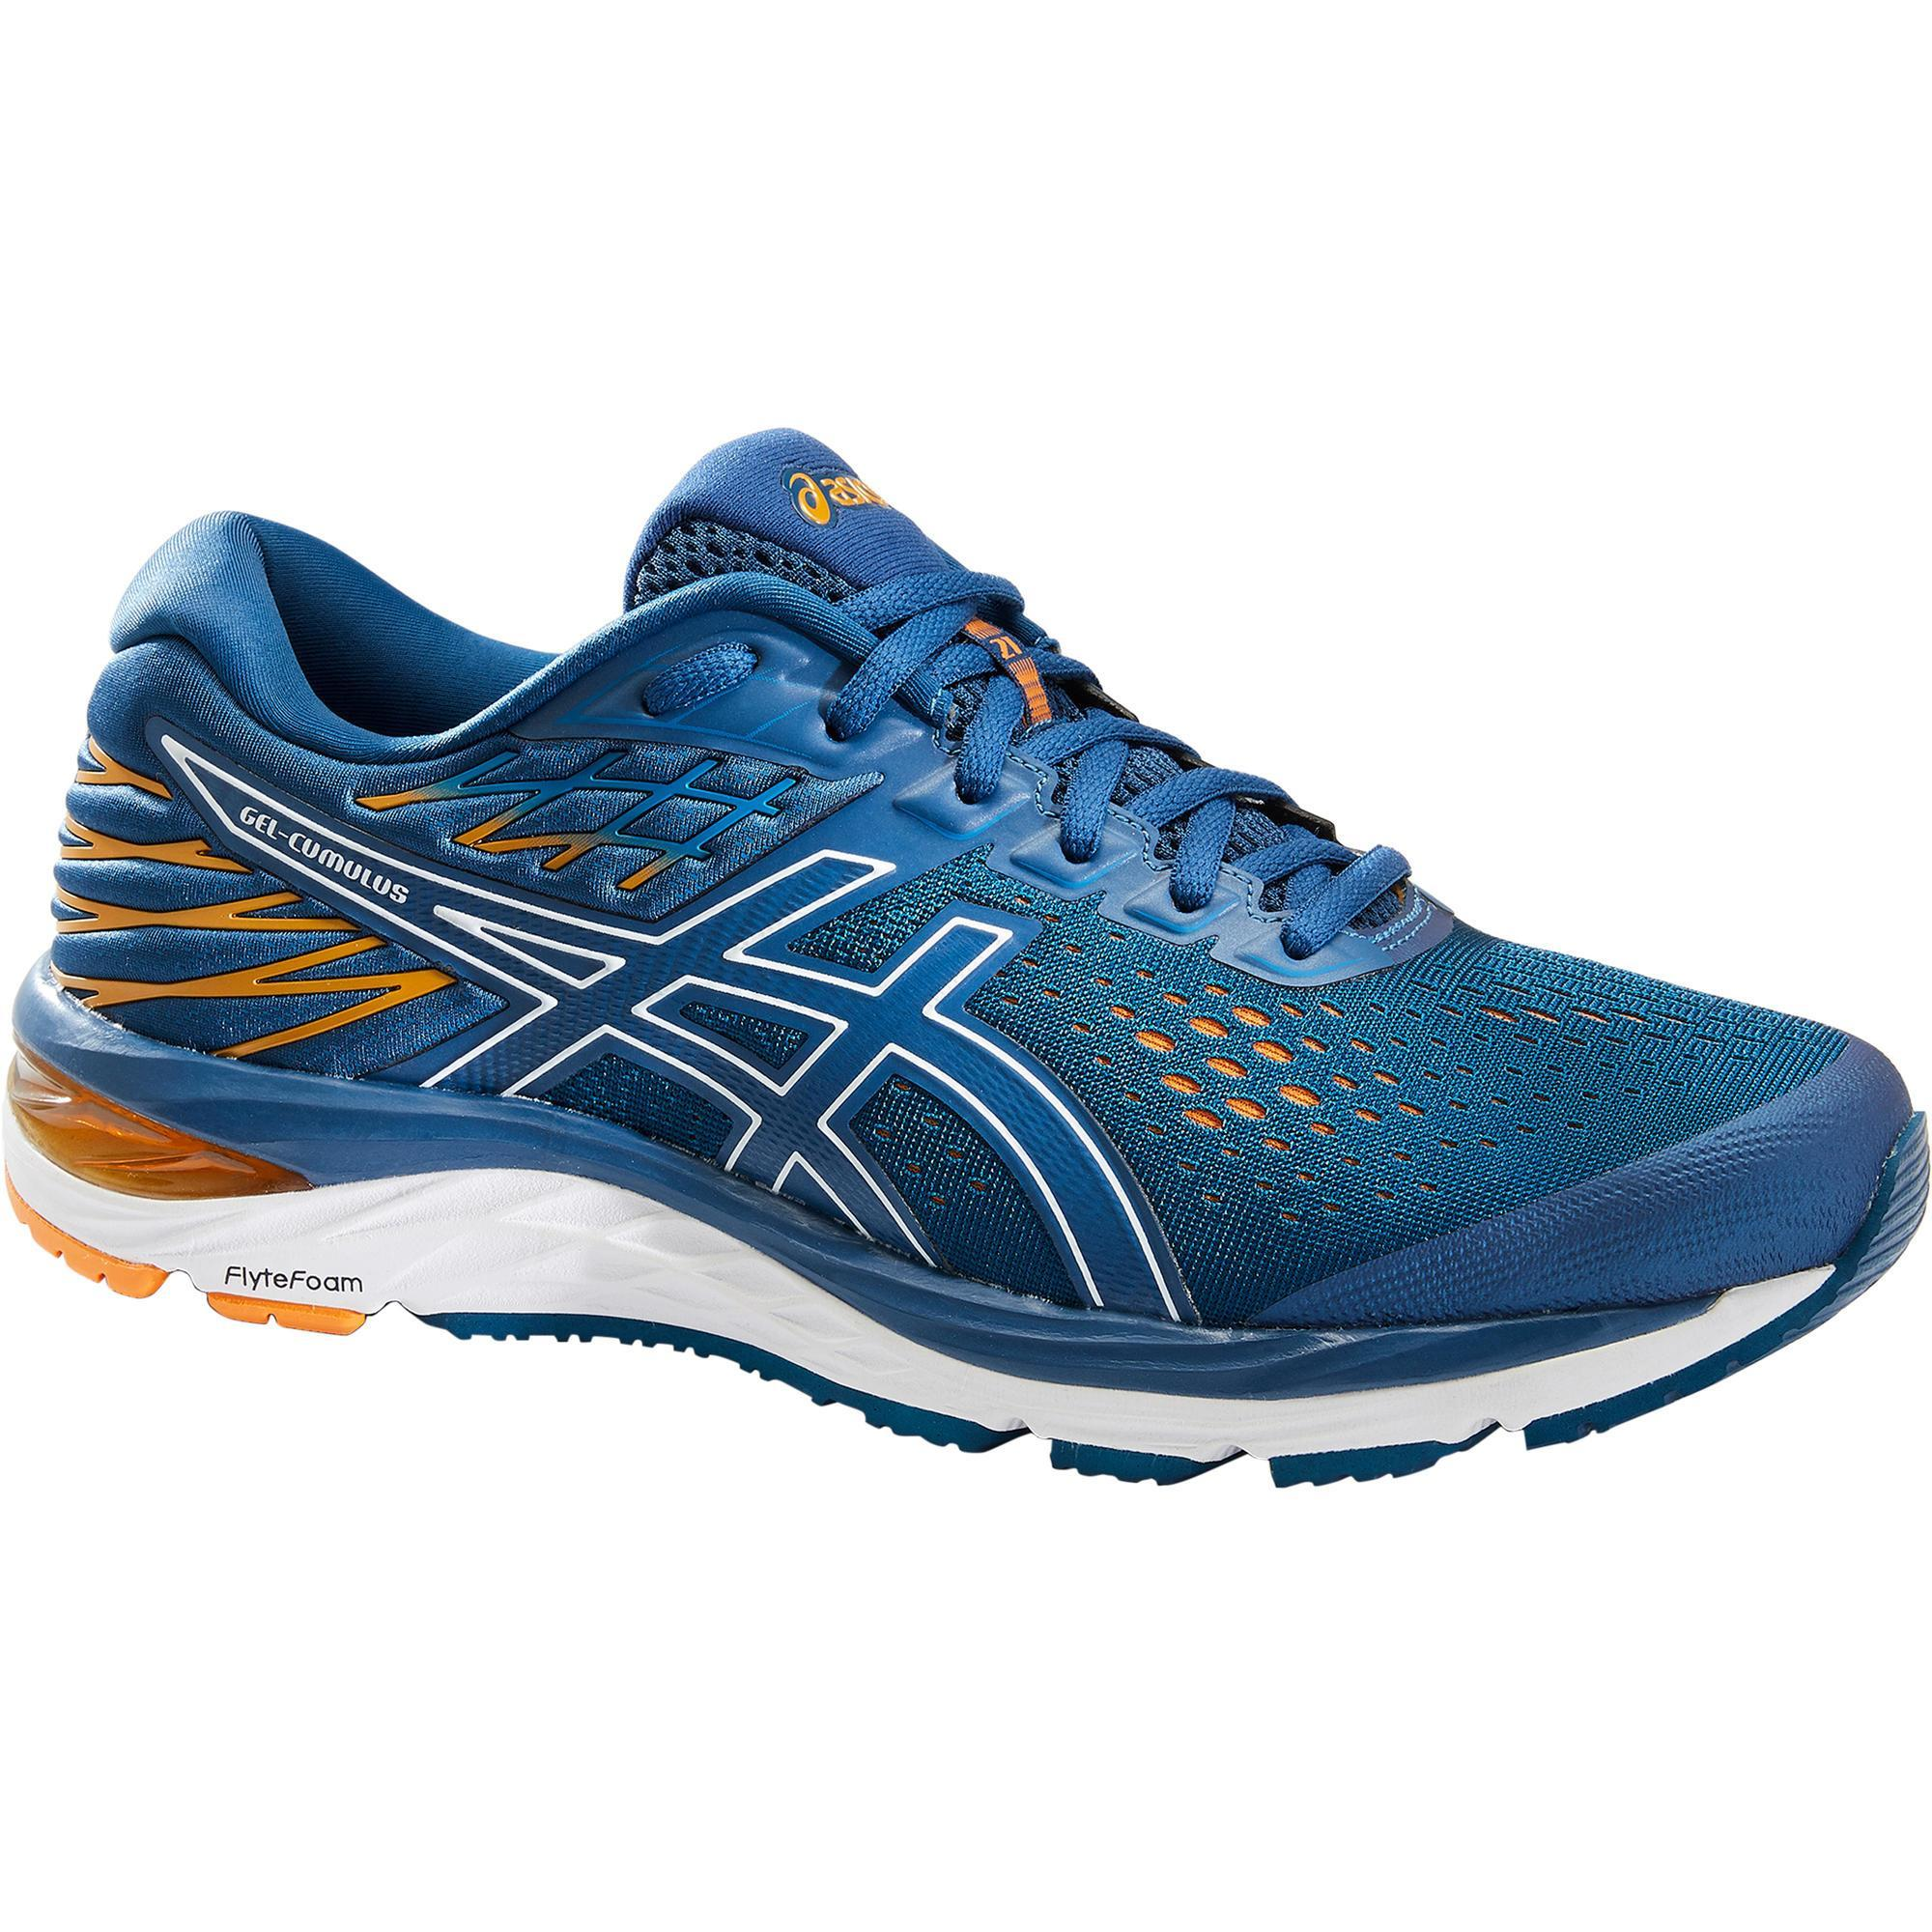 Reduction Chaussure Running Femme Asics GEL Kenun MX